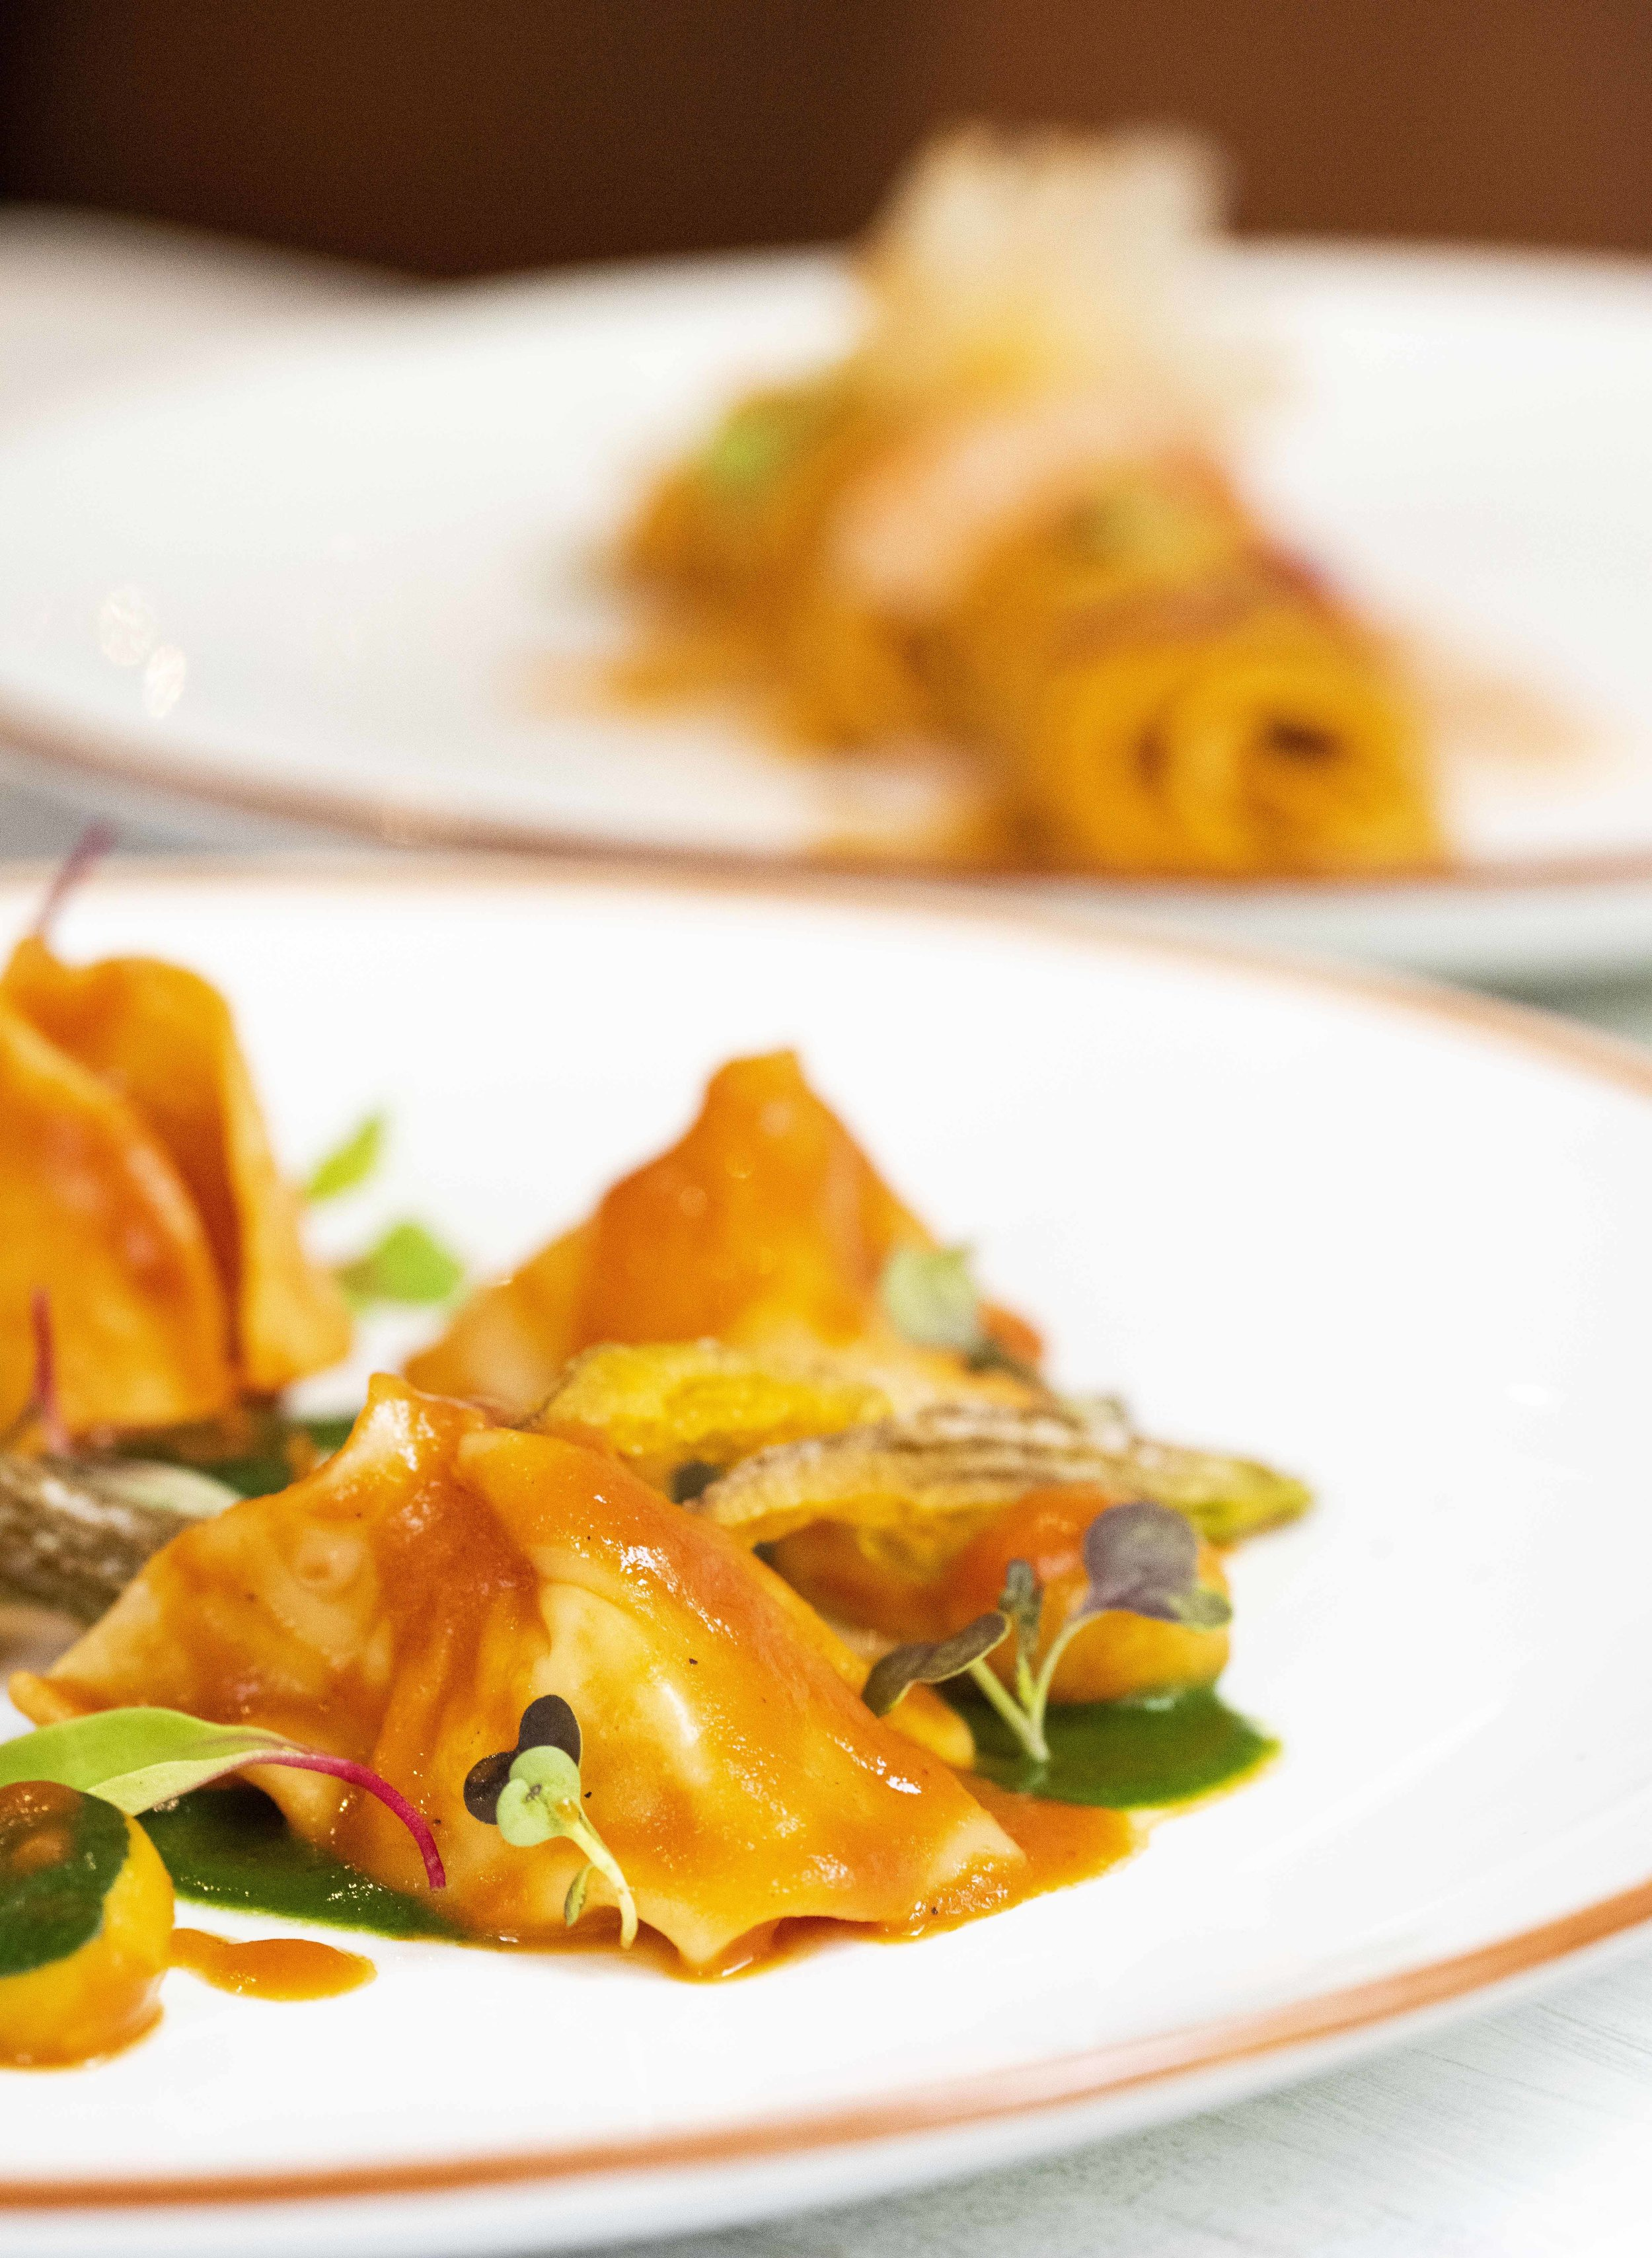 Ravioli with seabass, nettle cream and zucchini blossoms at Fastuc Restaurant, Barcelona. Photo © Barcelona Food Experience.